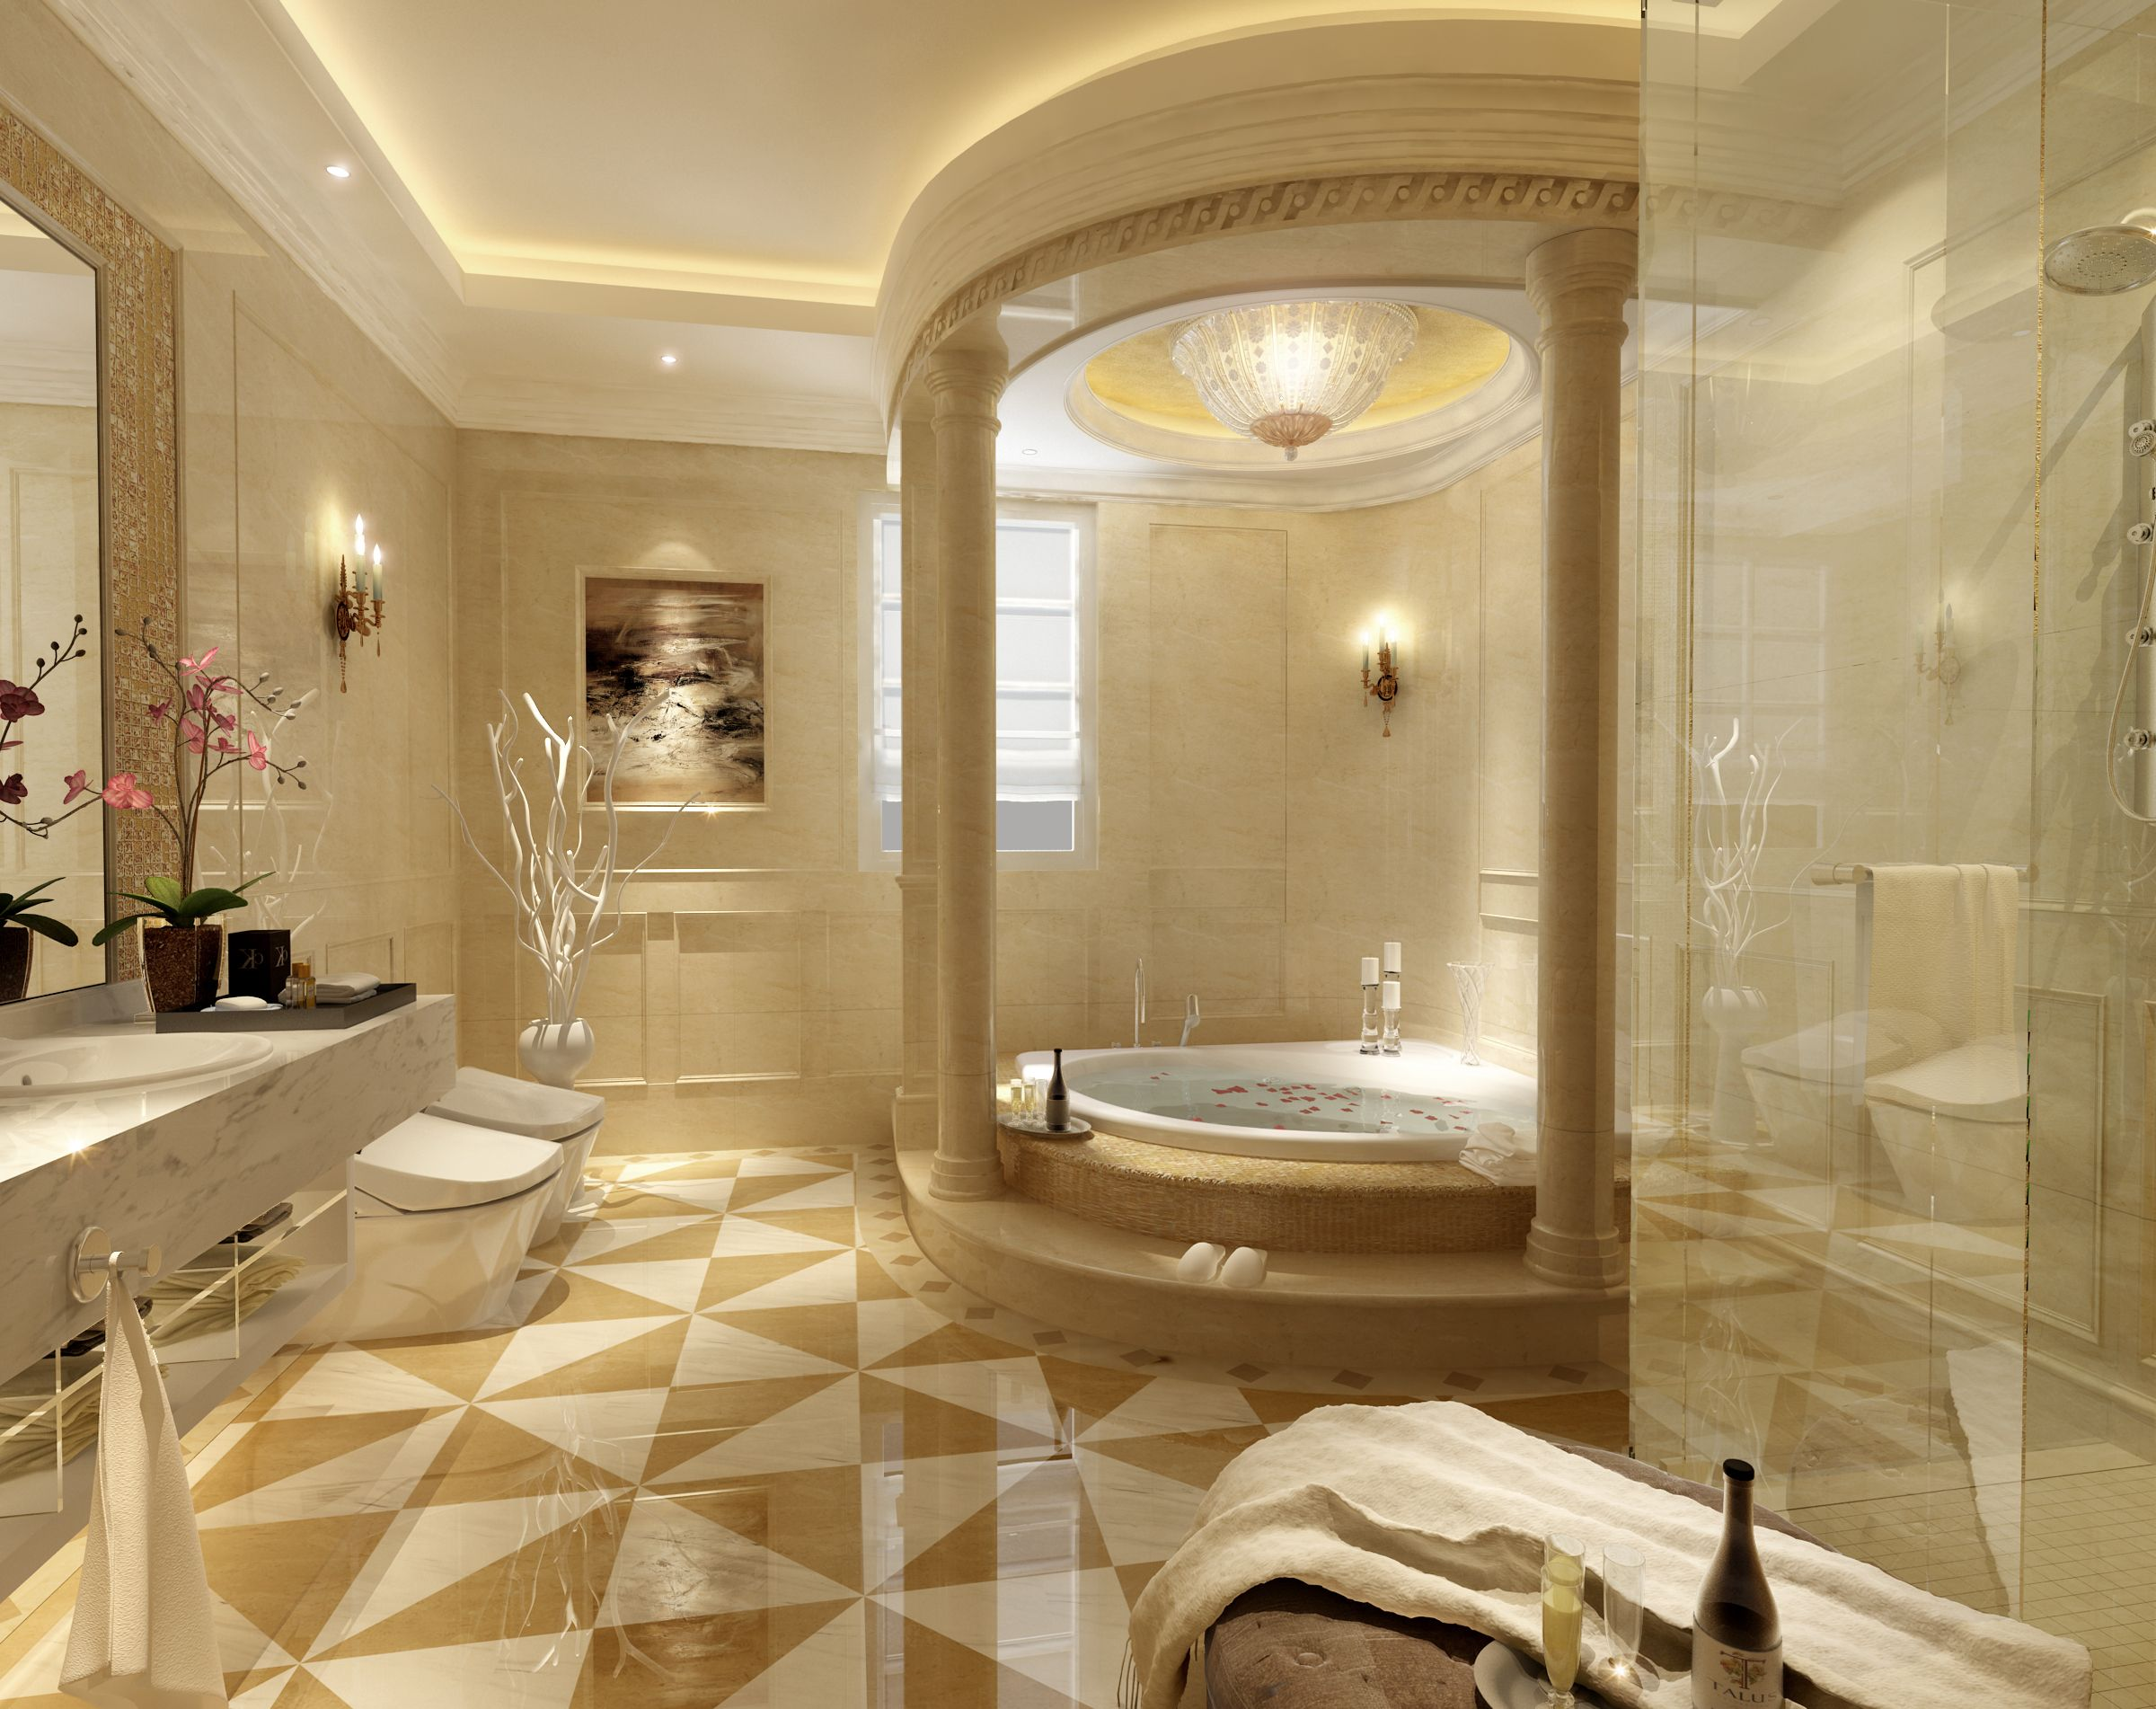 Luxury homes interior bathrooms - Fancy Bathrooms Luxury Bathroom 3d Model Max